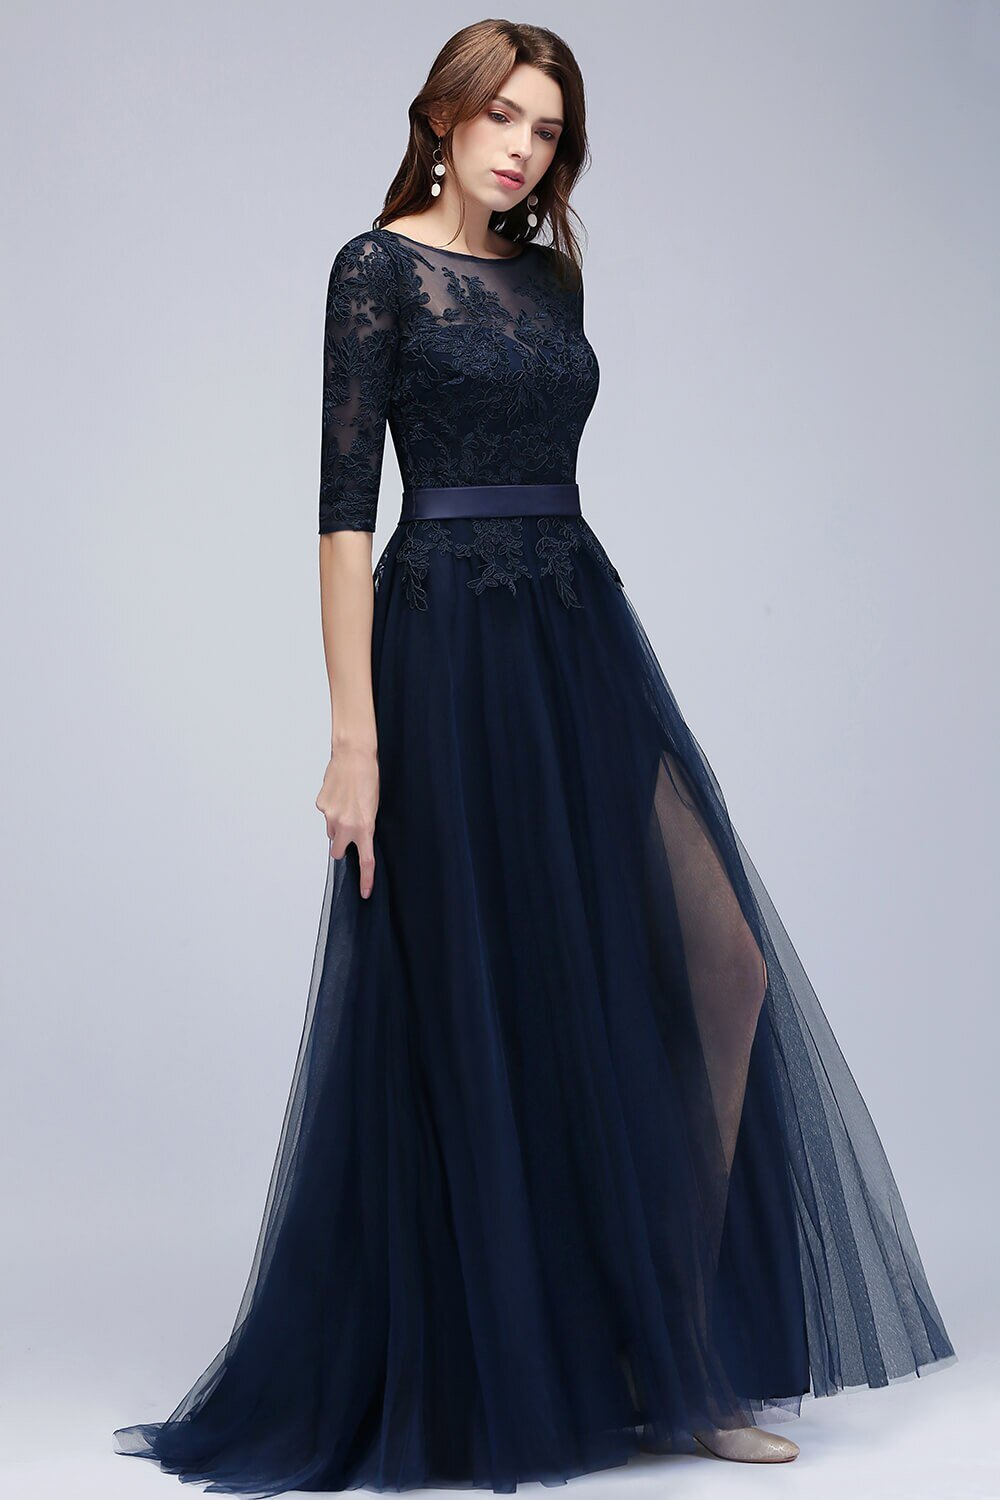 New Arrival Navy Blue Lace Long Evening Dress  Elegant Half Sleeve Tulle Evening Gowns with Sashes Robe de Soiree Longue